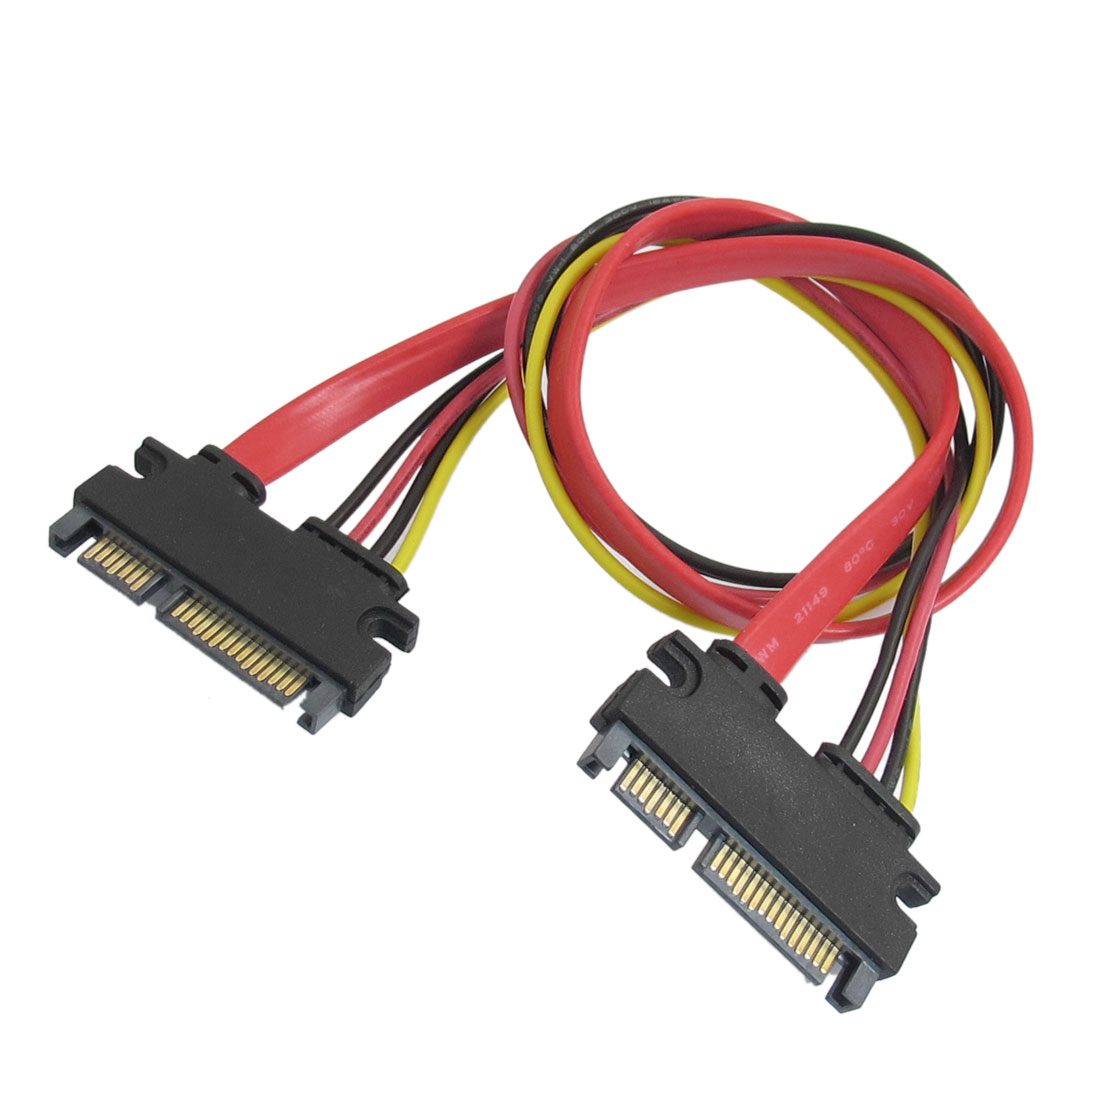 UXCELL Computer 15 Pin + 7 Pin Serial Ata Sata Male To Male Power Cable(China (Mainland))